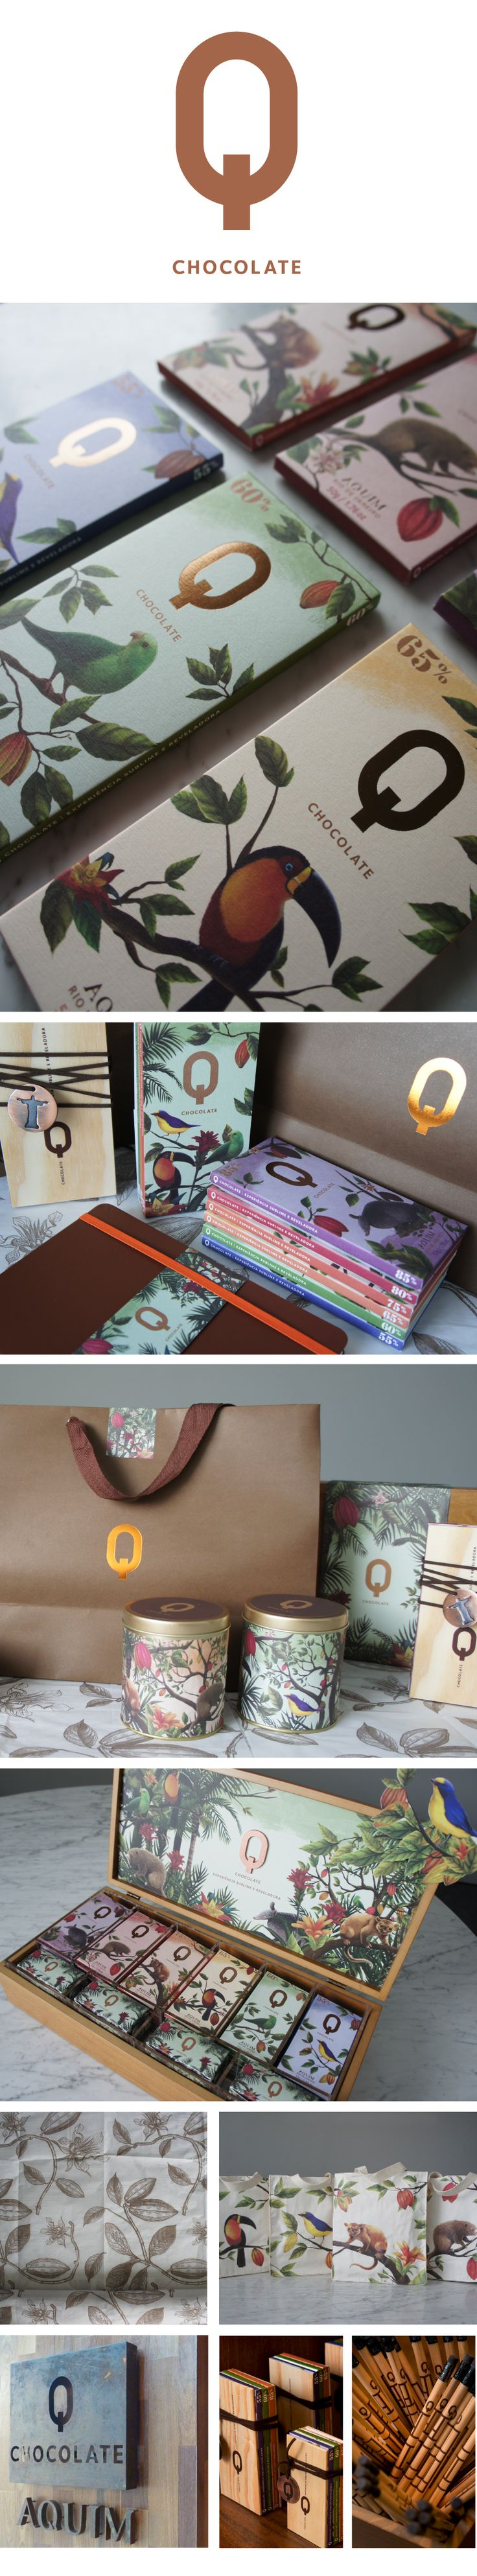 Q Chocolate - Aquim Gastronomia | by Claudio Novaes Design (Cannes Design 2013)